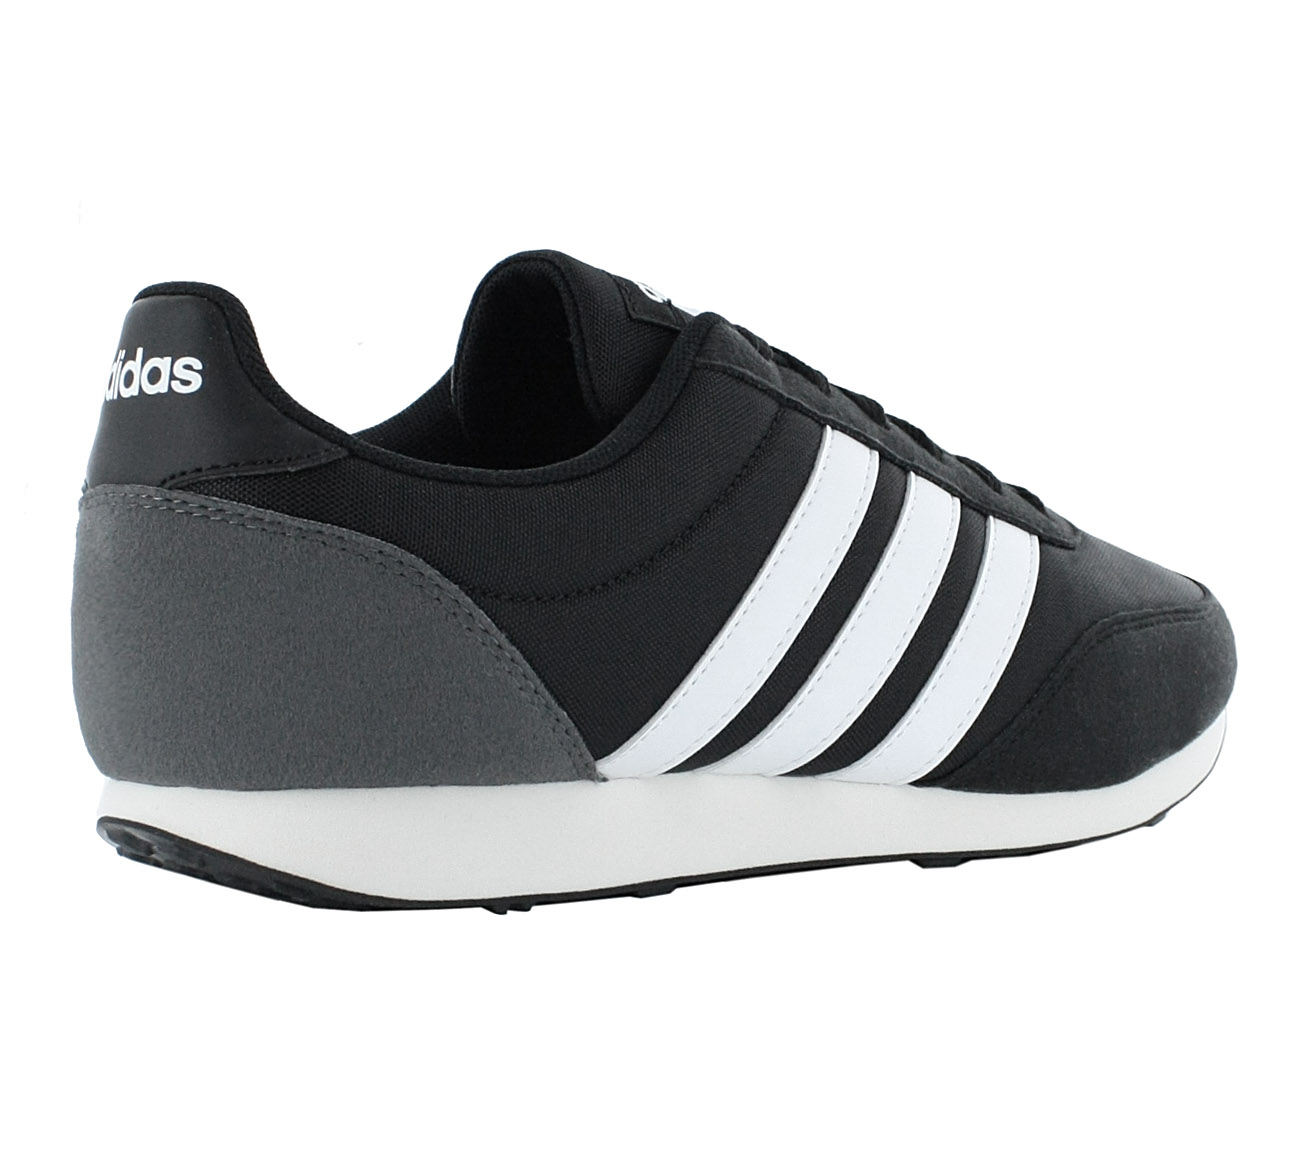 official photos 108c4 4e751 new zealand neuf adidas v racer bc0106 hommes baskets chaussures 53542 82e60